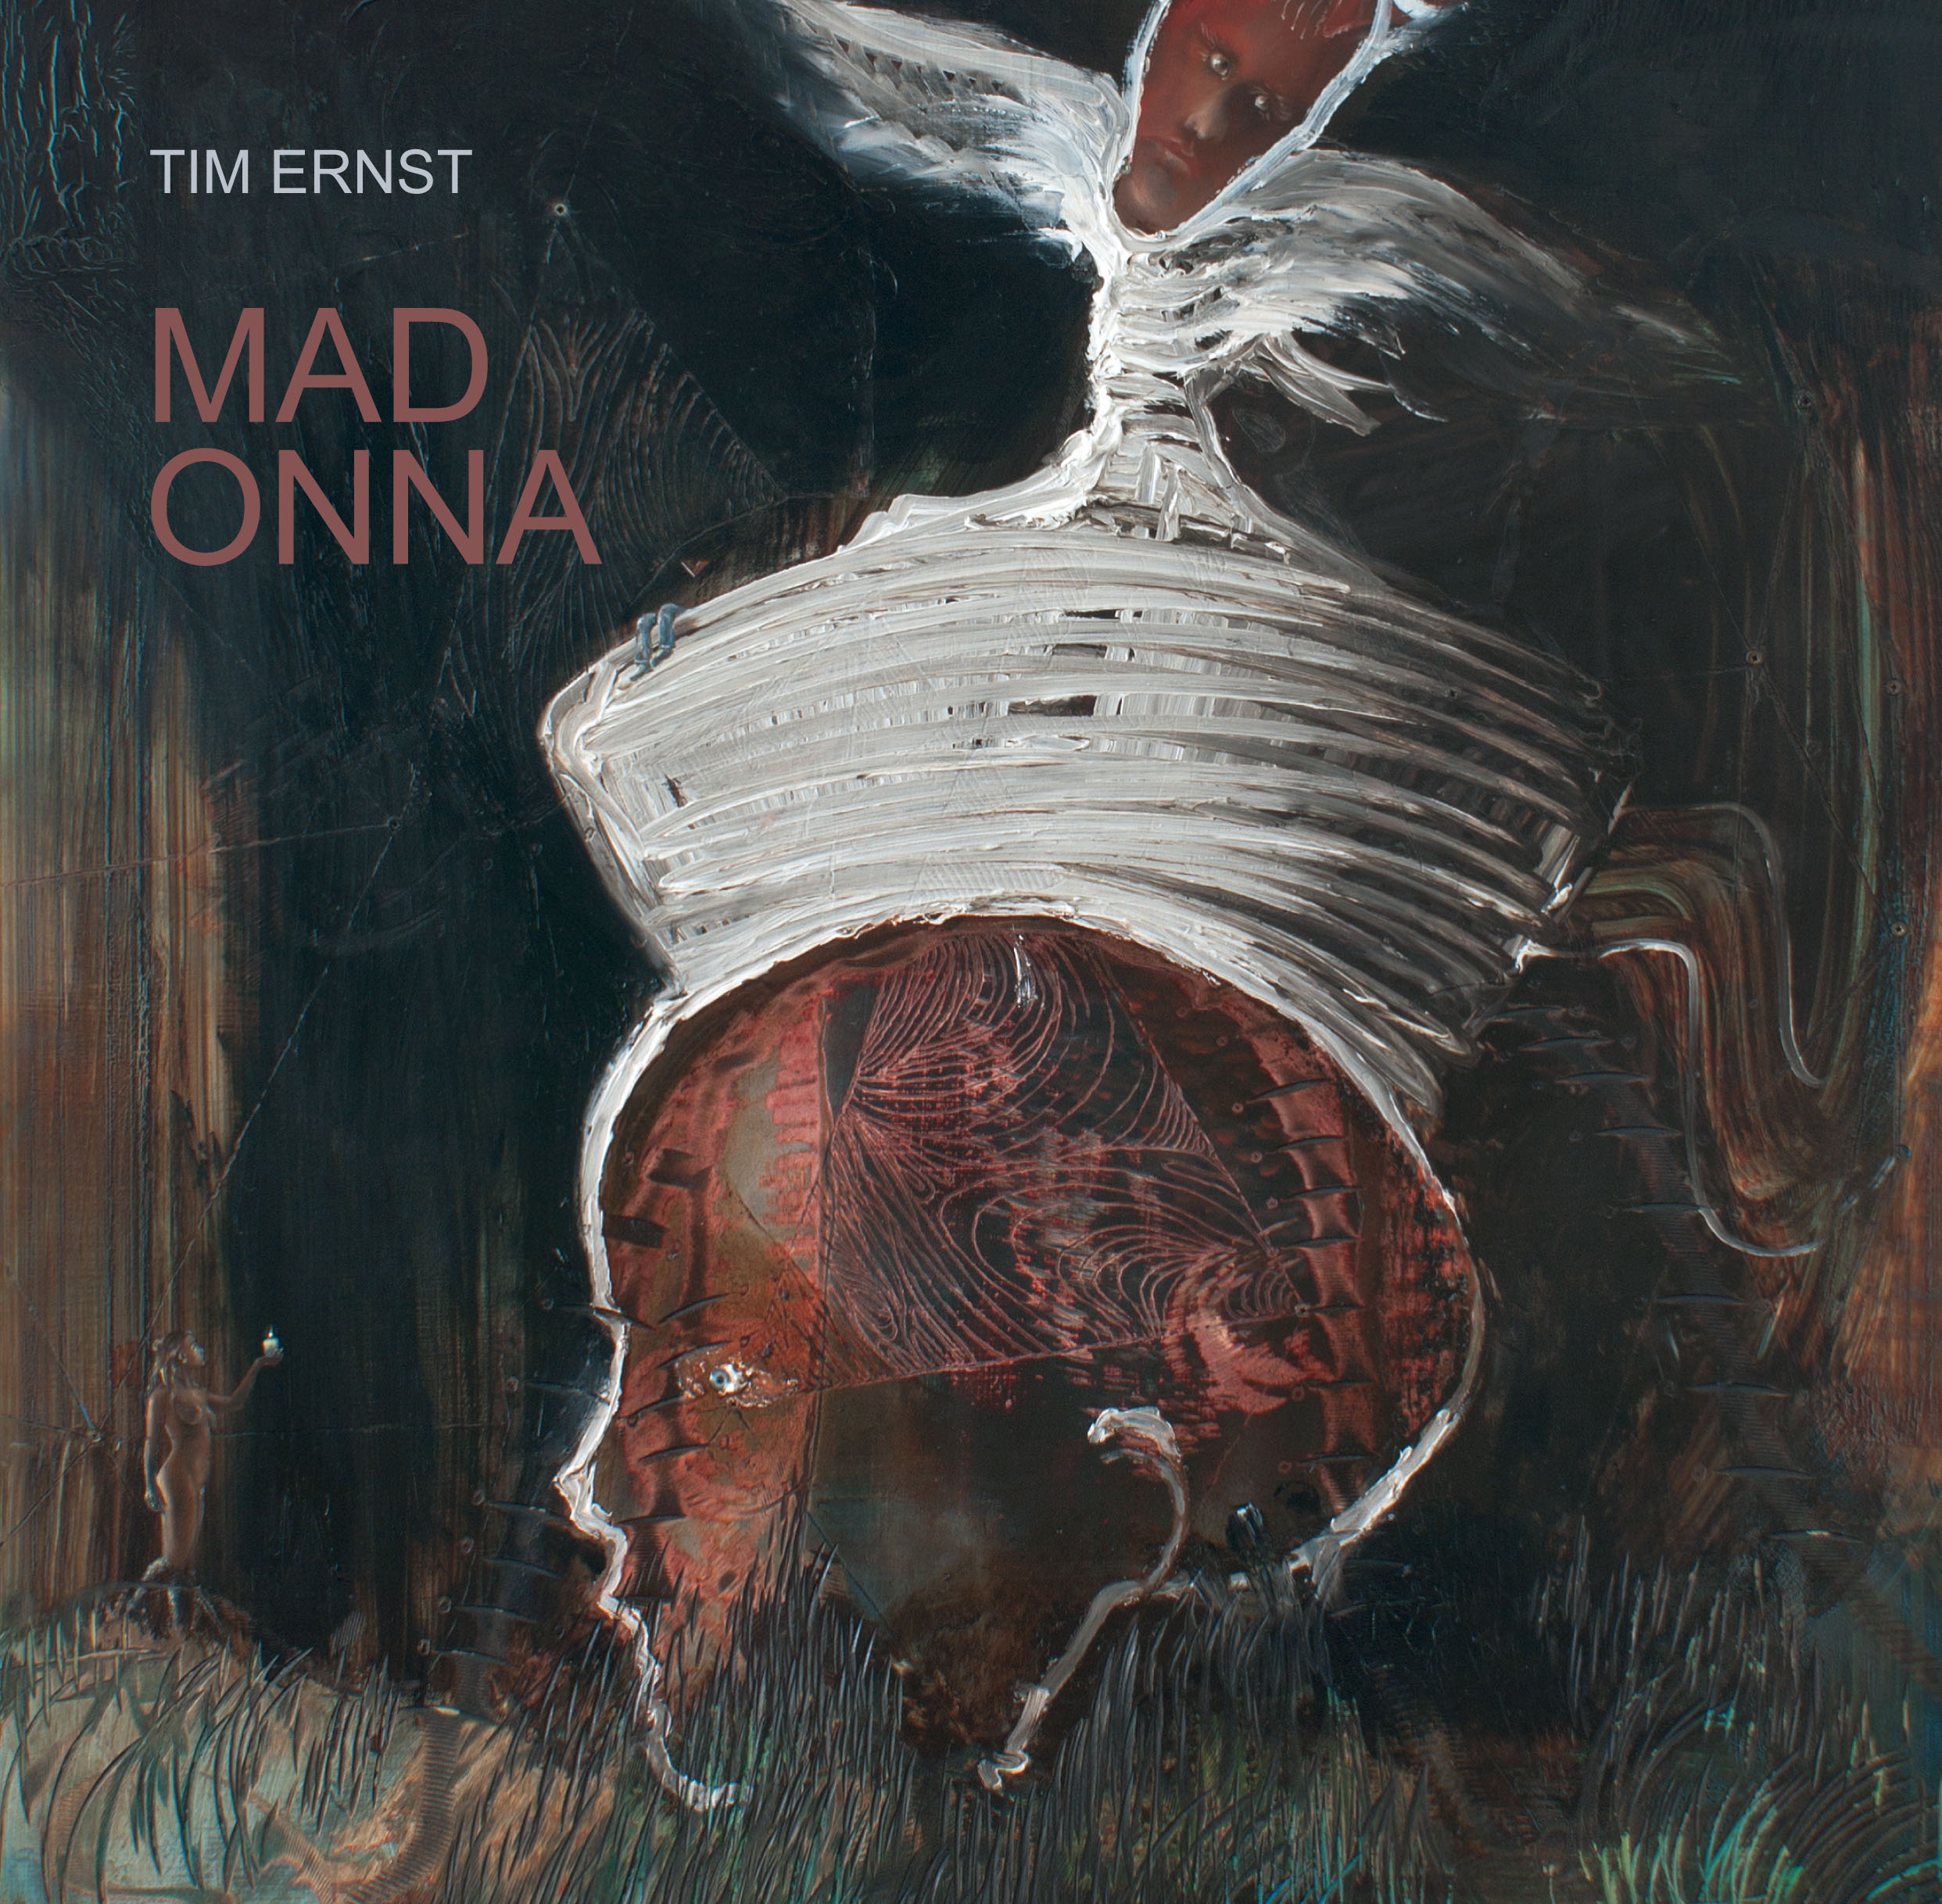 TIM ERNST – MAD ONNA